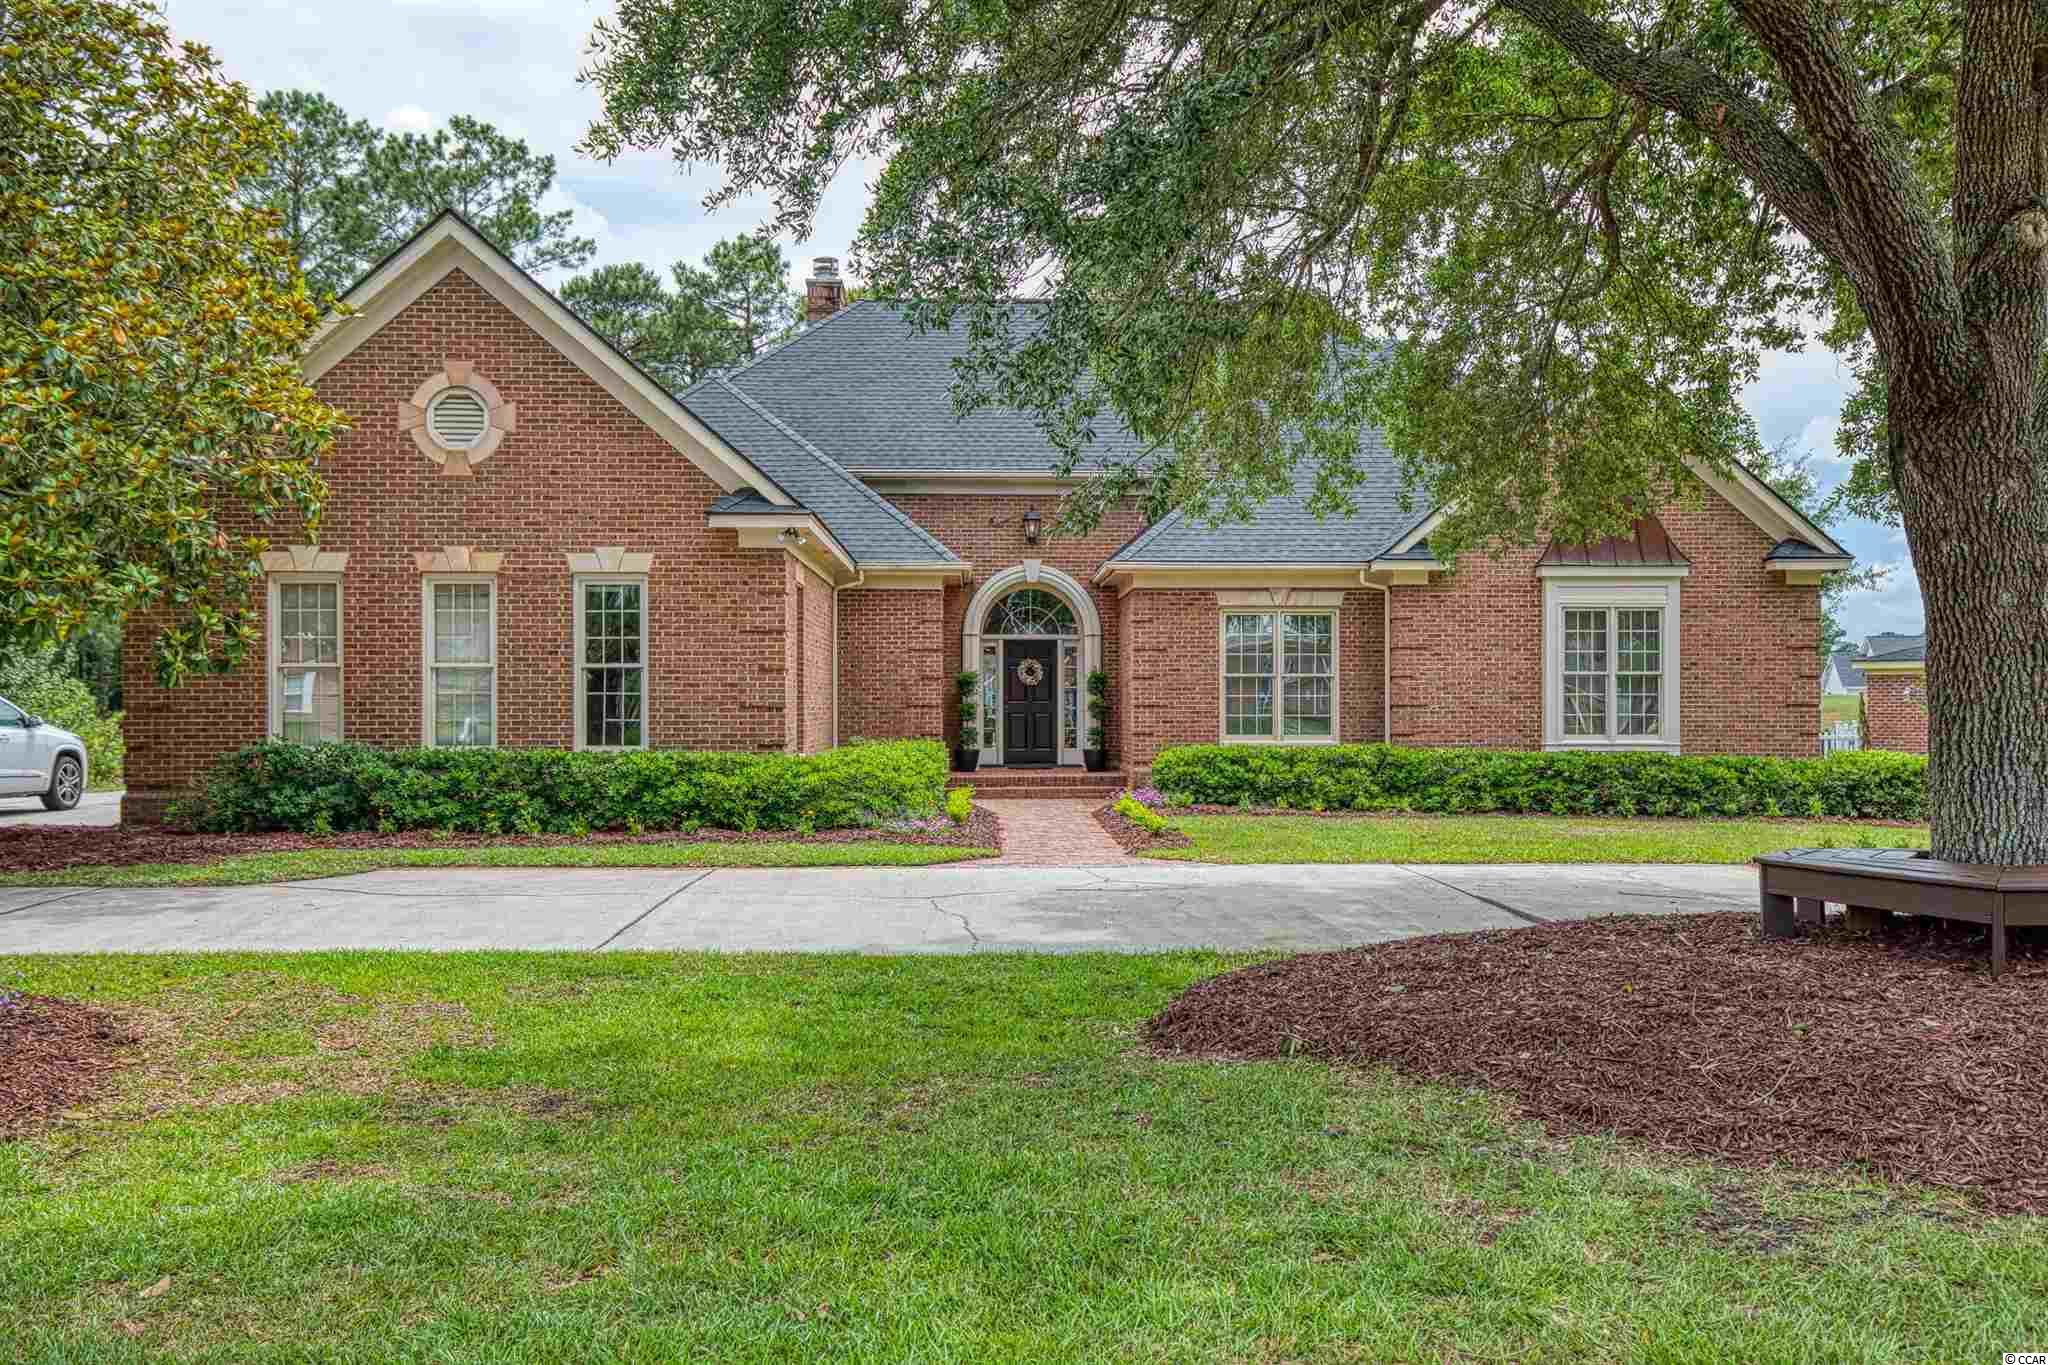 This custom built brick home is situated on a 0.44 acre lot overlooking the second green of Burning Ridge Golf Course.  Forest Lake Estates is a highly desirable community with a private gated entrance as well as the main entrance off of Highway 501.  You're welcomed to the home with a beautiful mature live oak in the front yard, an oversized side loading garage and a brick walkway to the front door.  Upon entering the home you will find an open airy living room with a gas fire place and French doors leading to the Carolina room.  Through another set of French doors is the spacious, open concept living room with hard wood floors, a second gas fireplace, work station, and a bay window perfect for a breakfast nook.  The kitchen is well laid out with granite countertops, a breakfast bar, and plenty of storage space.  The master bedroom has tray ceilings, access to the brick patio, a walk in closet and a jacuzzi tub in the master bath.  The two additional bedrooms are Jack and Jill style with the second full bathroom shared between them.  There are two half bathrooms; one is a powder room and the other is in the laundry room.  Two large attics offer plenty of supplementary storage room.  The outdoor space in the back of the house features a brick patio with a golf course view with plenty of room for entertaining.